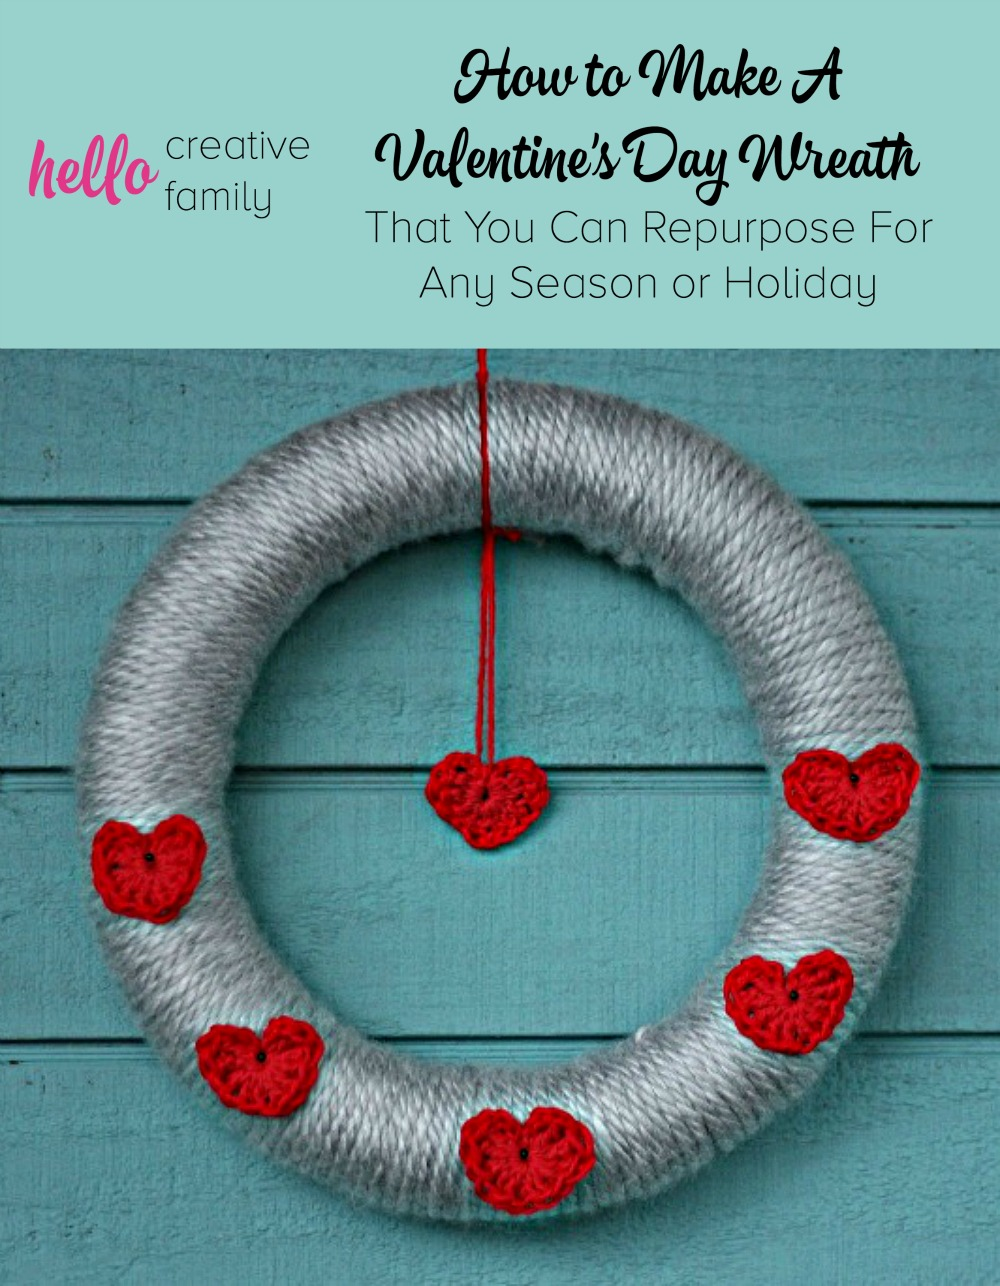 How to Make A Valentine's Day Wreath That You Can Repurpose For Any Season or Holiday